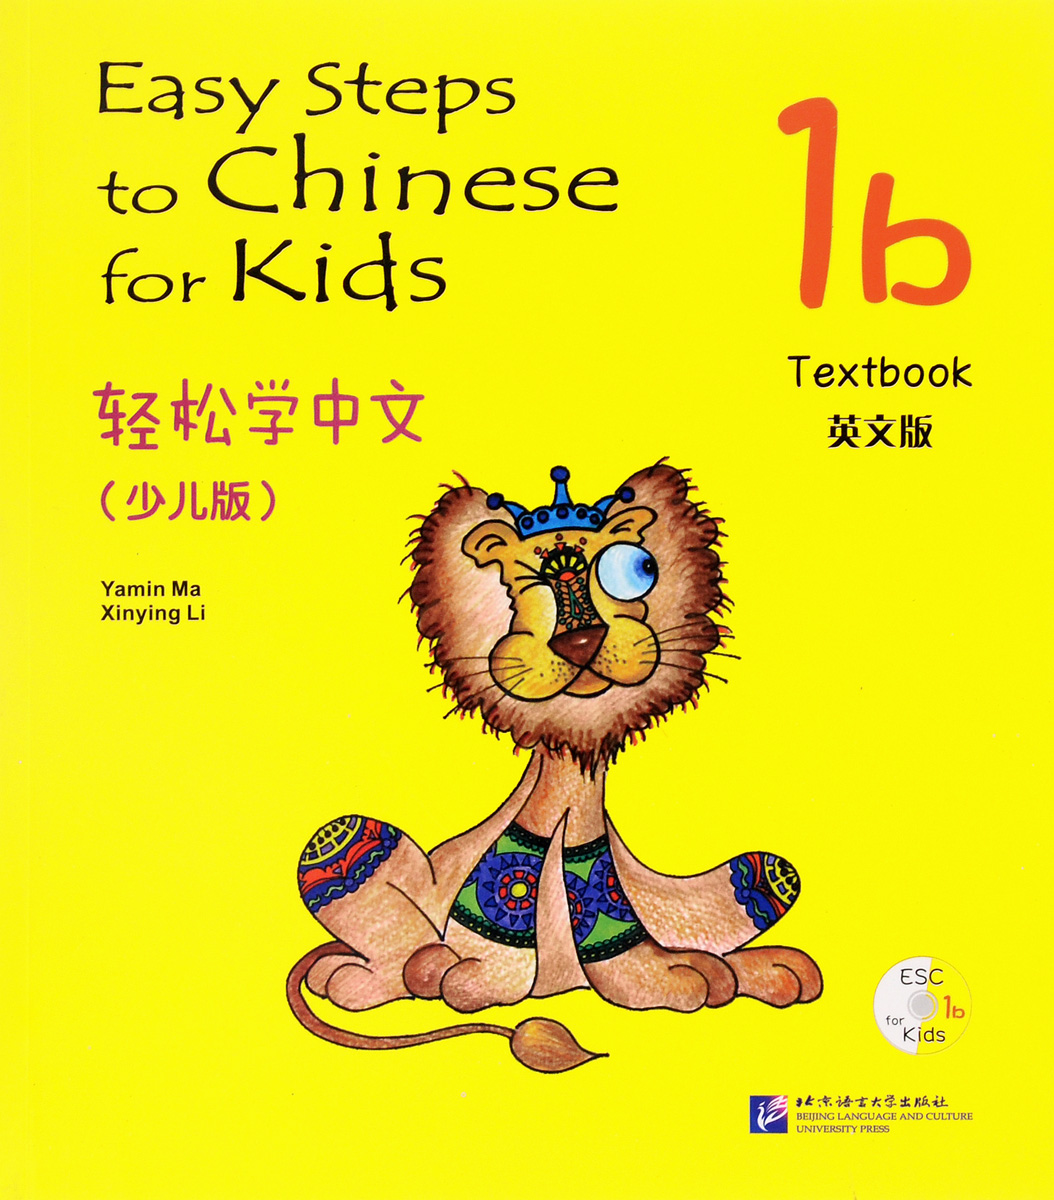 Easy Steps to Chinese for Kids: Textbook: 1b (+ СD) chinese made easy for kids textbook 3 german edition simplified chinese version by yamin ma chinese study book for children